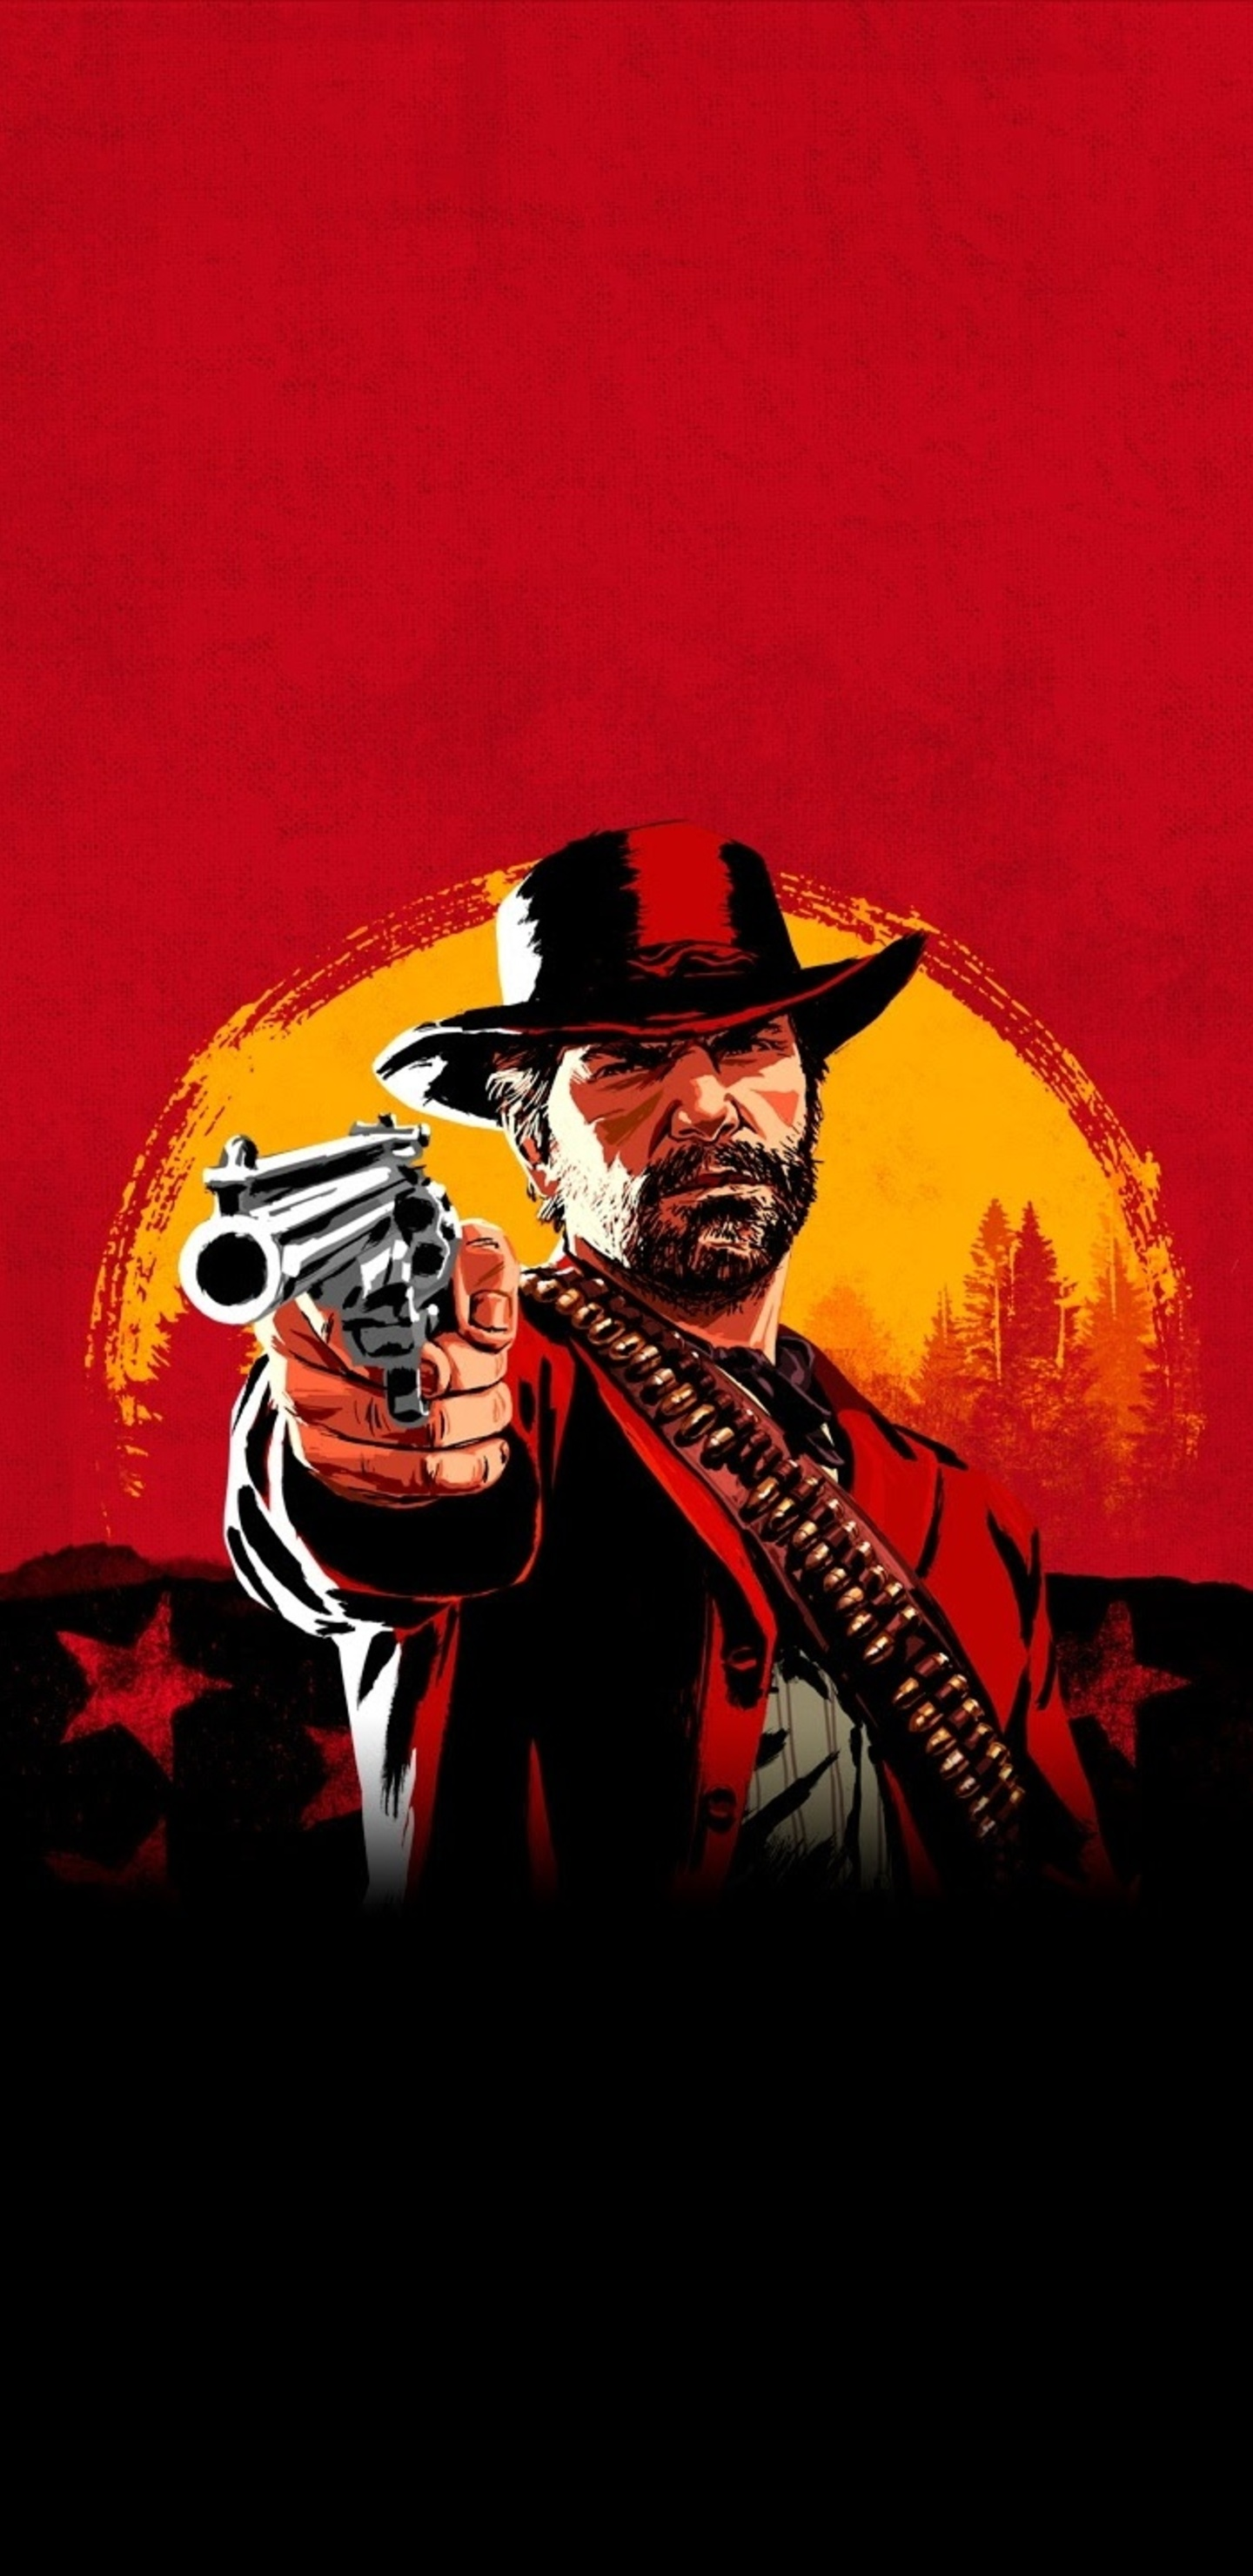 1440x2960 Red Dead Redemption 2 Samsung Galaxy Note 9 8 S9 S8 S8 Qhd Hd 4k Wallpapers Images Backgrounds Photos And Pictures